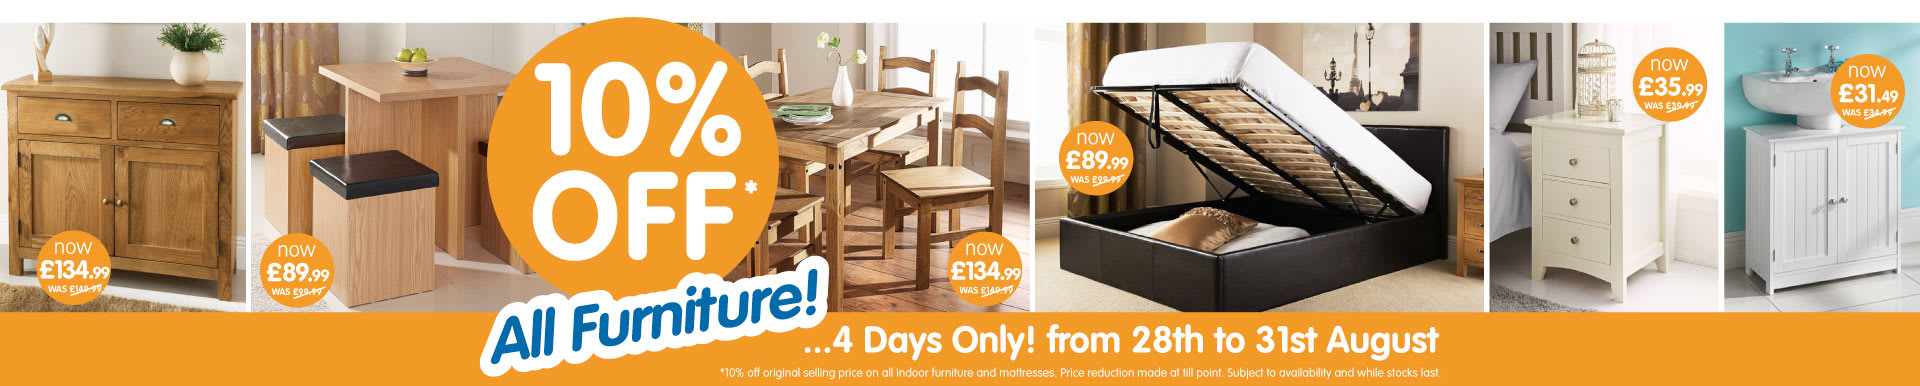 10% off ALL indoor furniture at B&M for 4 days only from 28th August to 31st August.